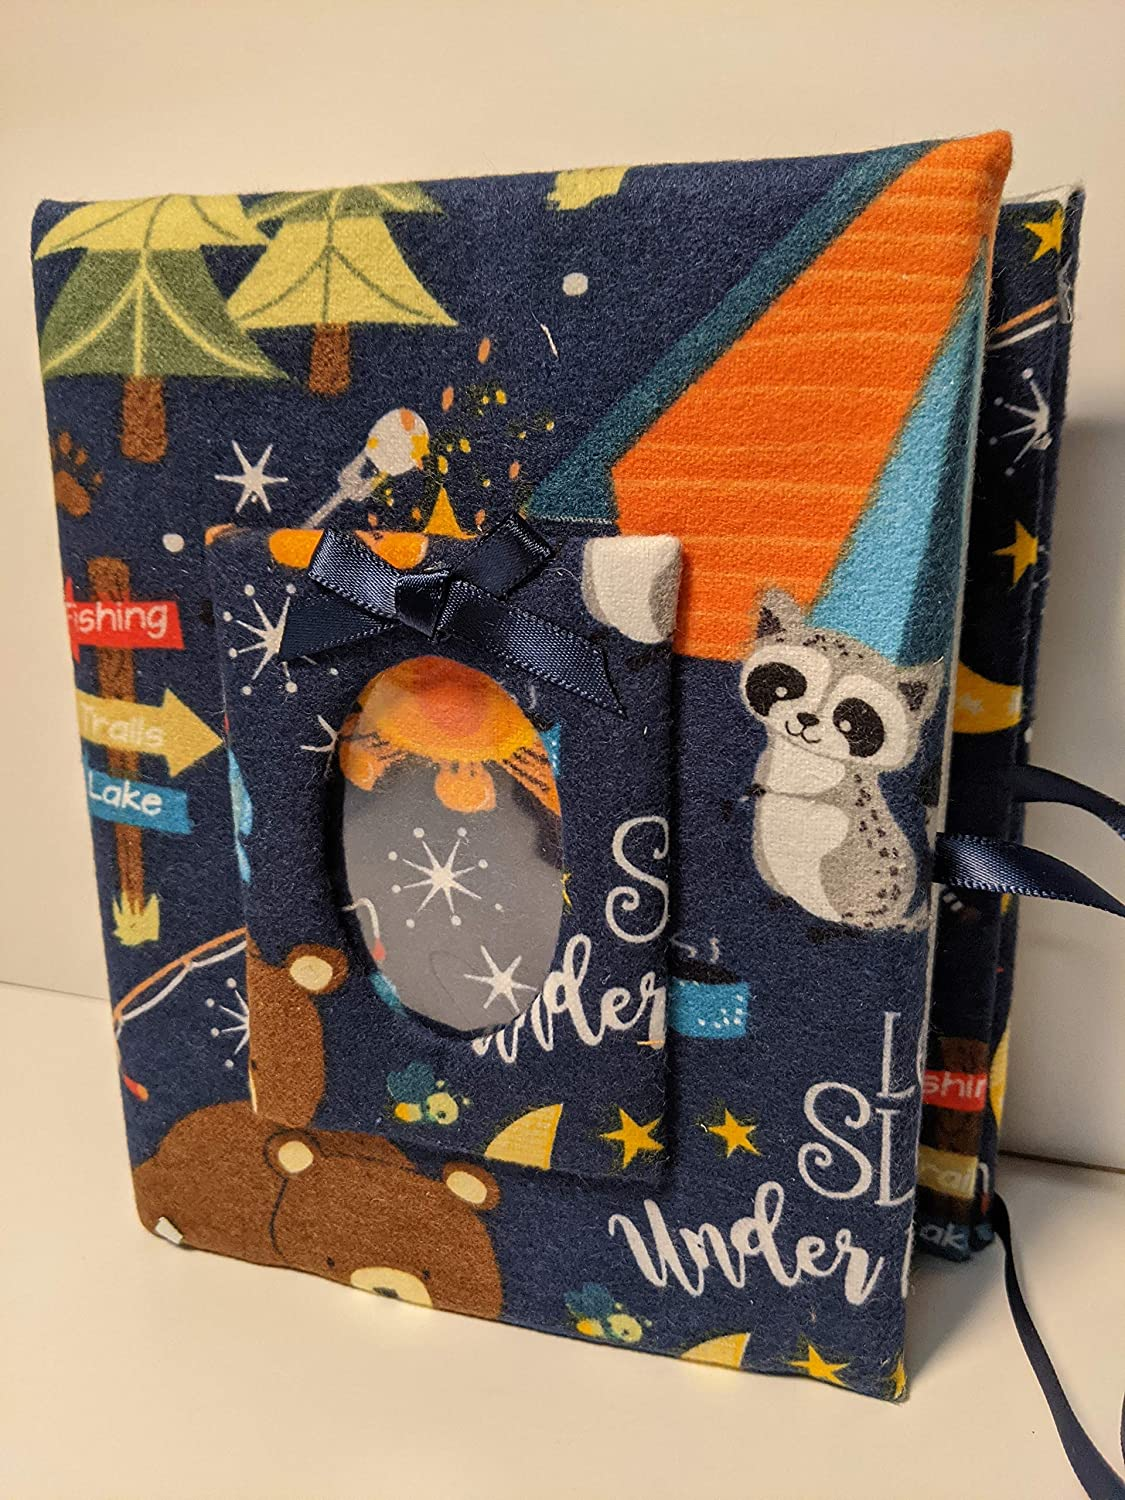 Camping Some reservation Photo Album for Low price Boy - Handmade H Baby